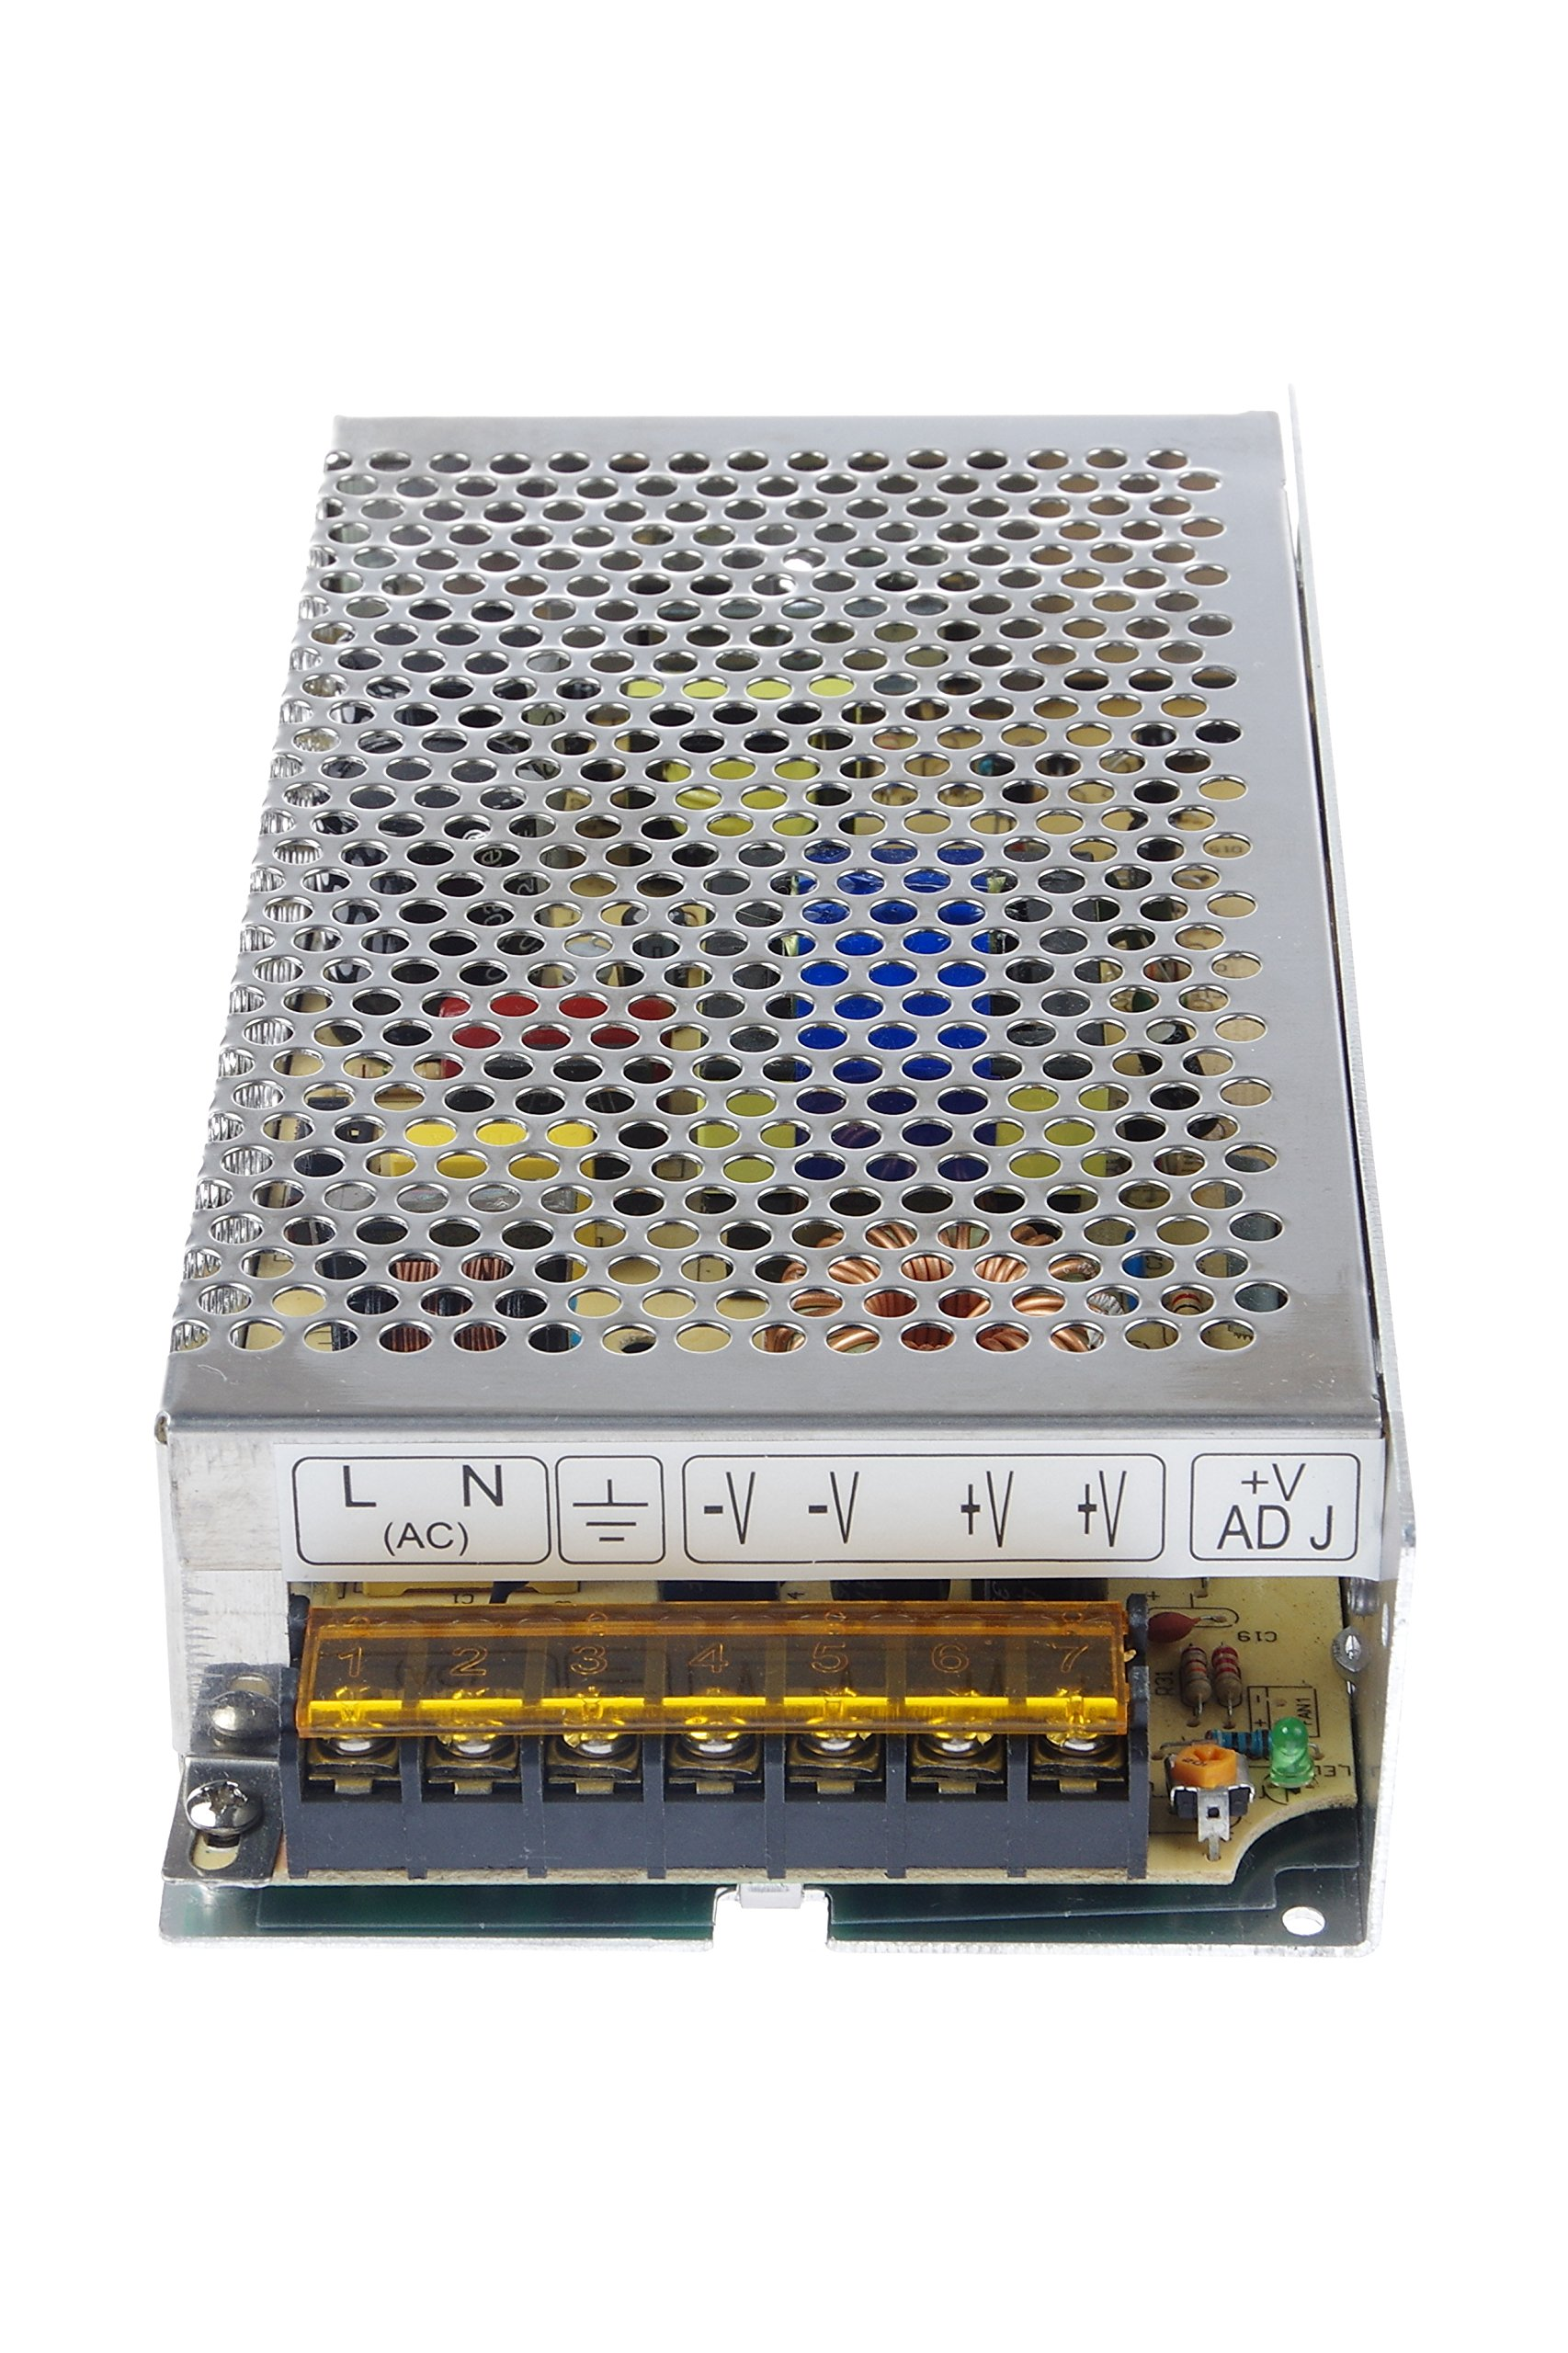 LM YN 110V/220V AC to DC 24V 5A 120W Switching Power Supply Driver,Power Transformer for CCTV camera, Security System, LED Strip Light, Radio, Computer Project by LM YN (Image #7)